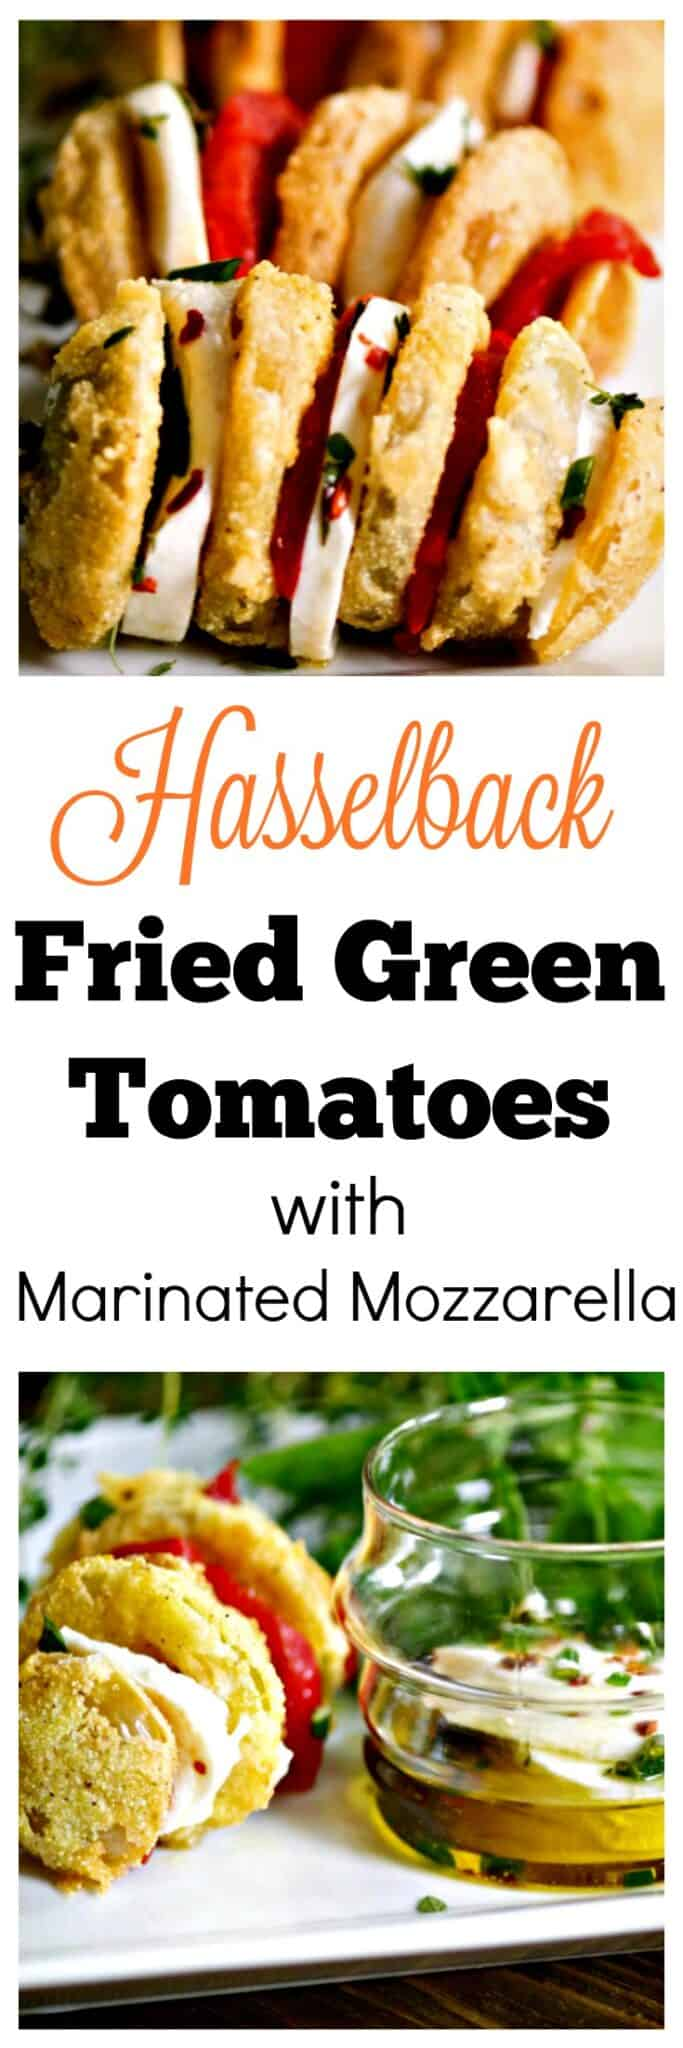 Hasselback Fried Green Tomatoes with Marinated Mozzarella Recipe #friedgreentomatorecipe #appetizers #sidedish